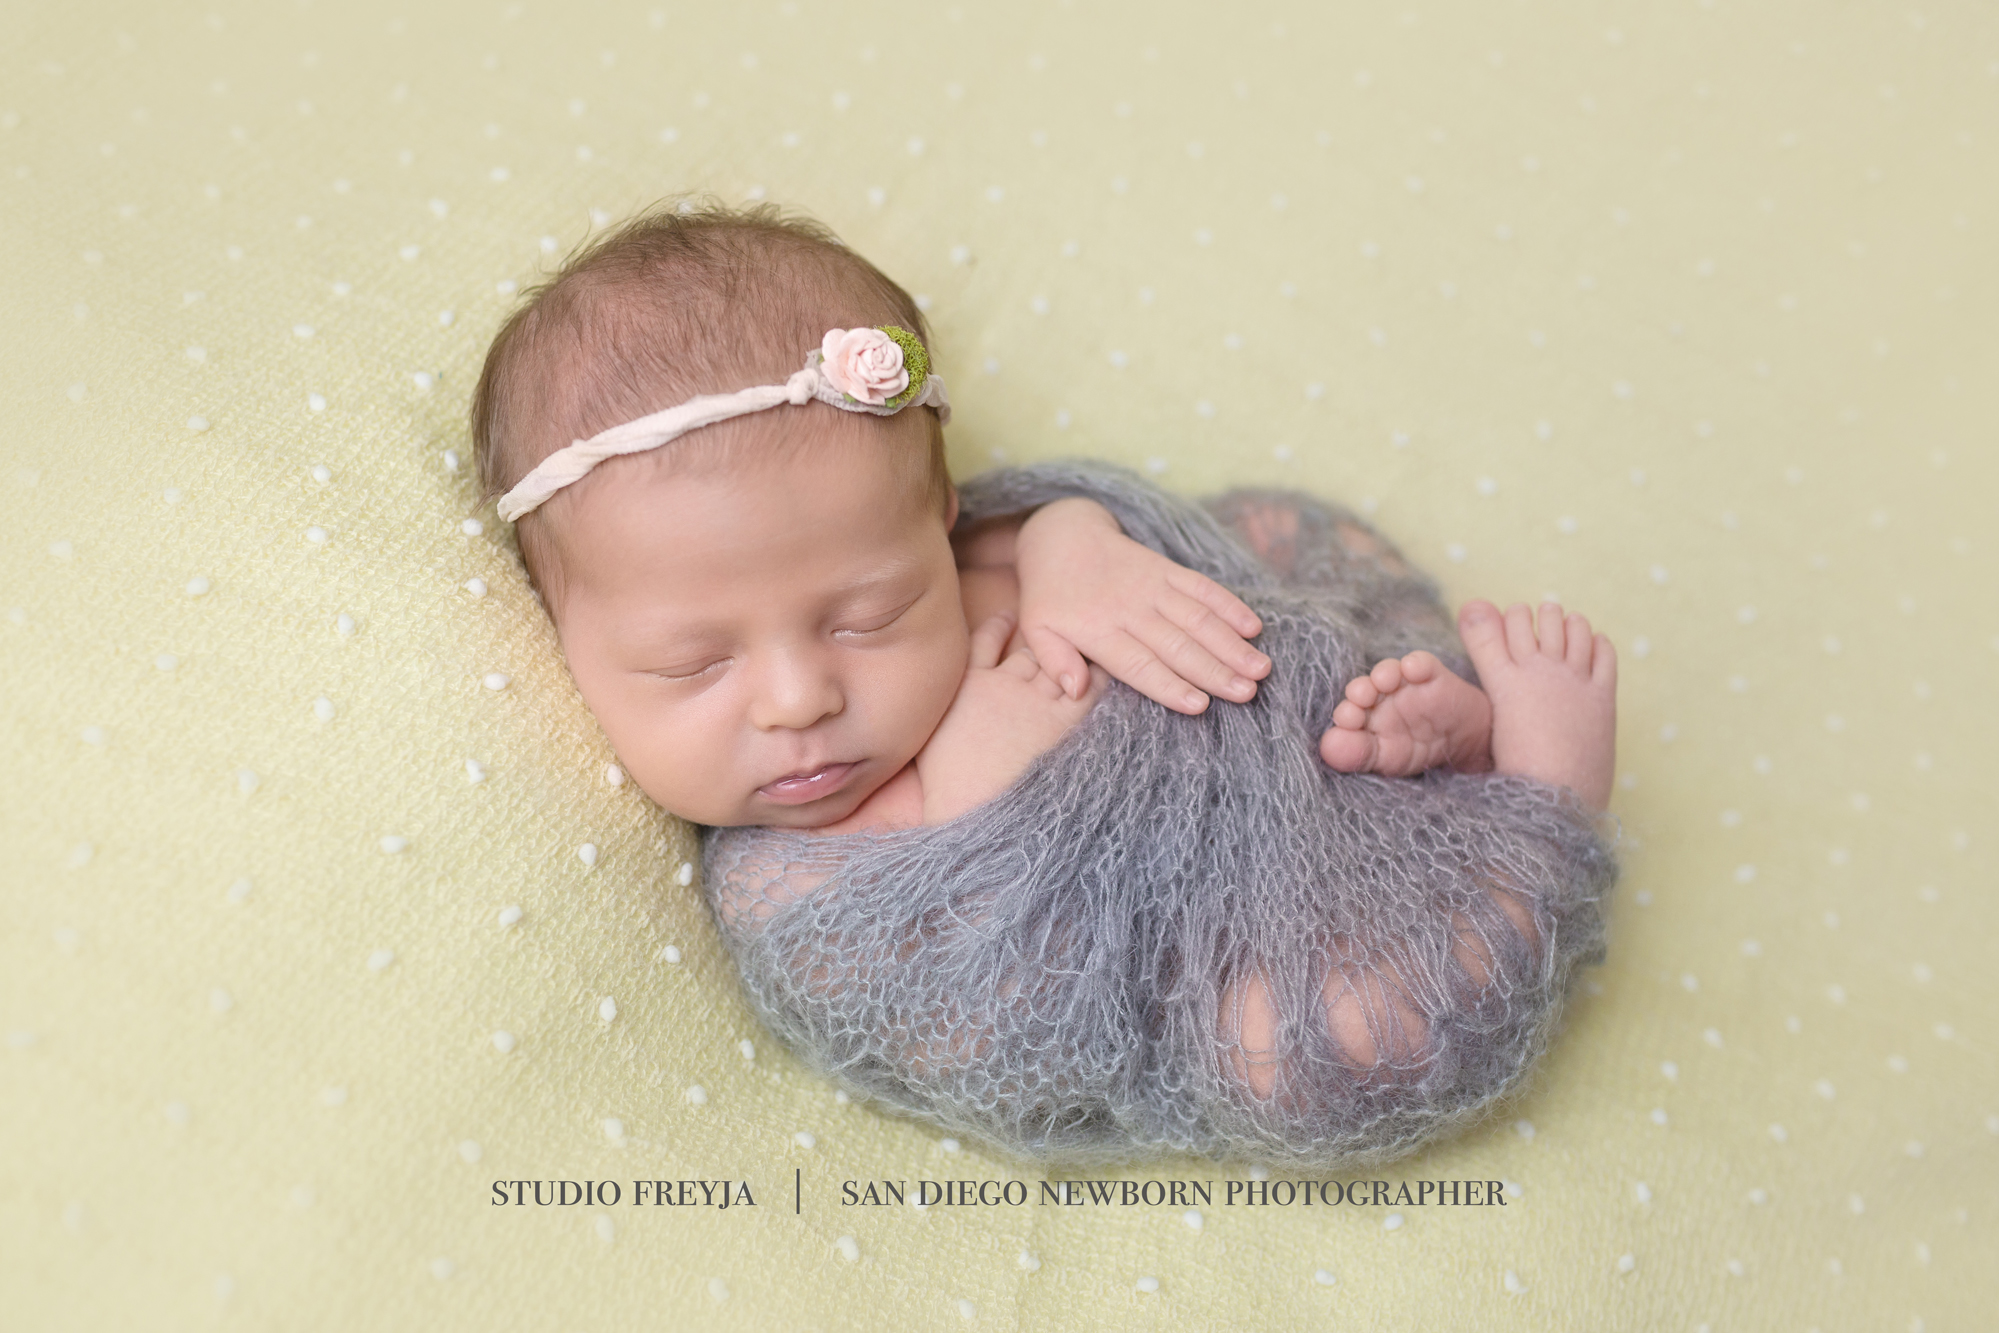 Hana Newborn Session Copyright Studio Freyja  San Diego Newborn Photographer (1 of 4).jpg